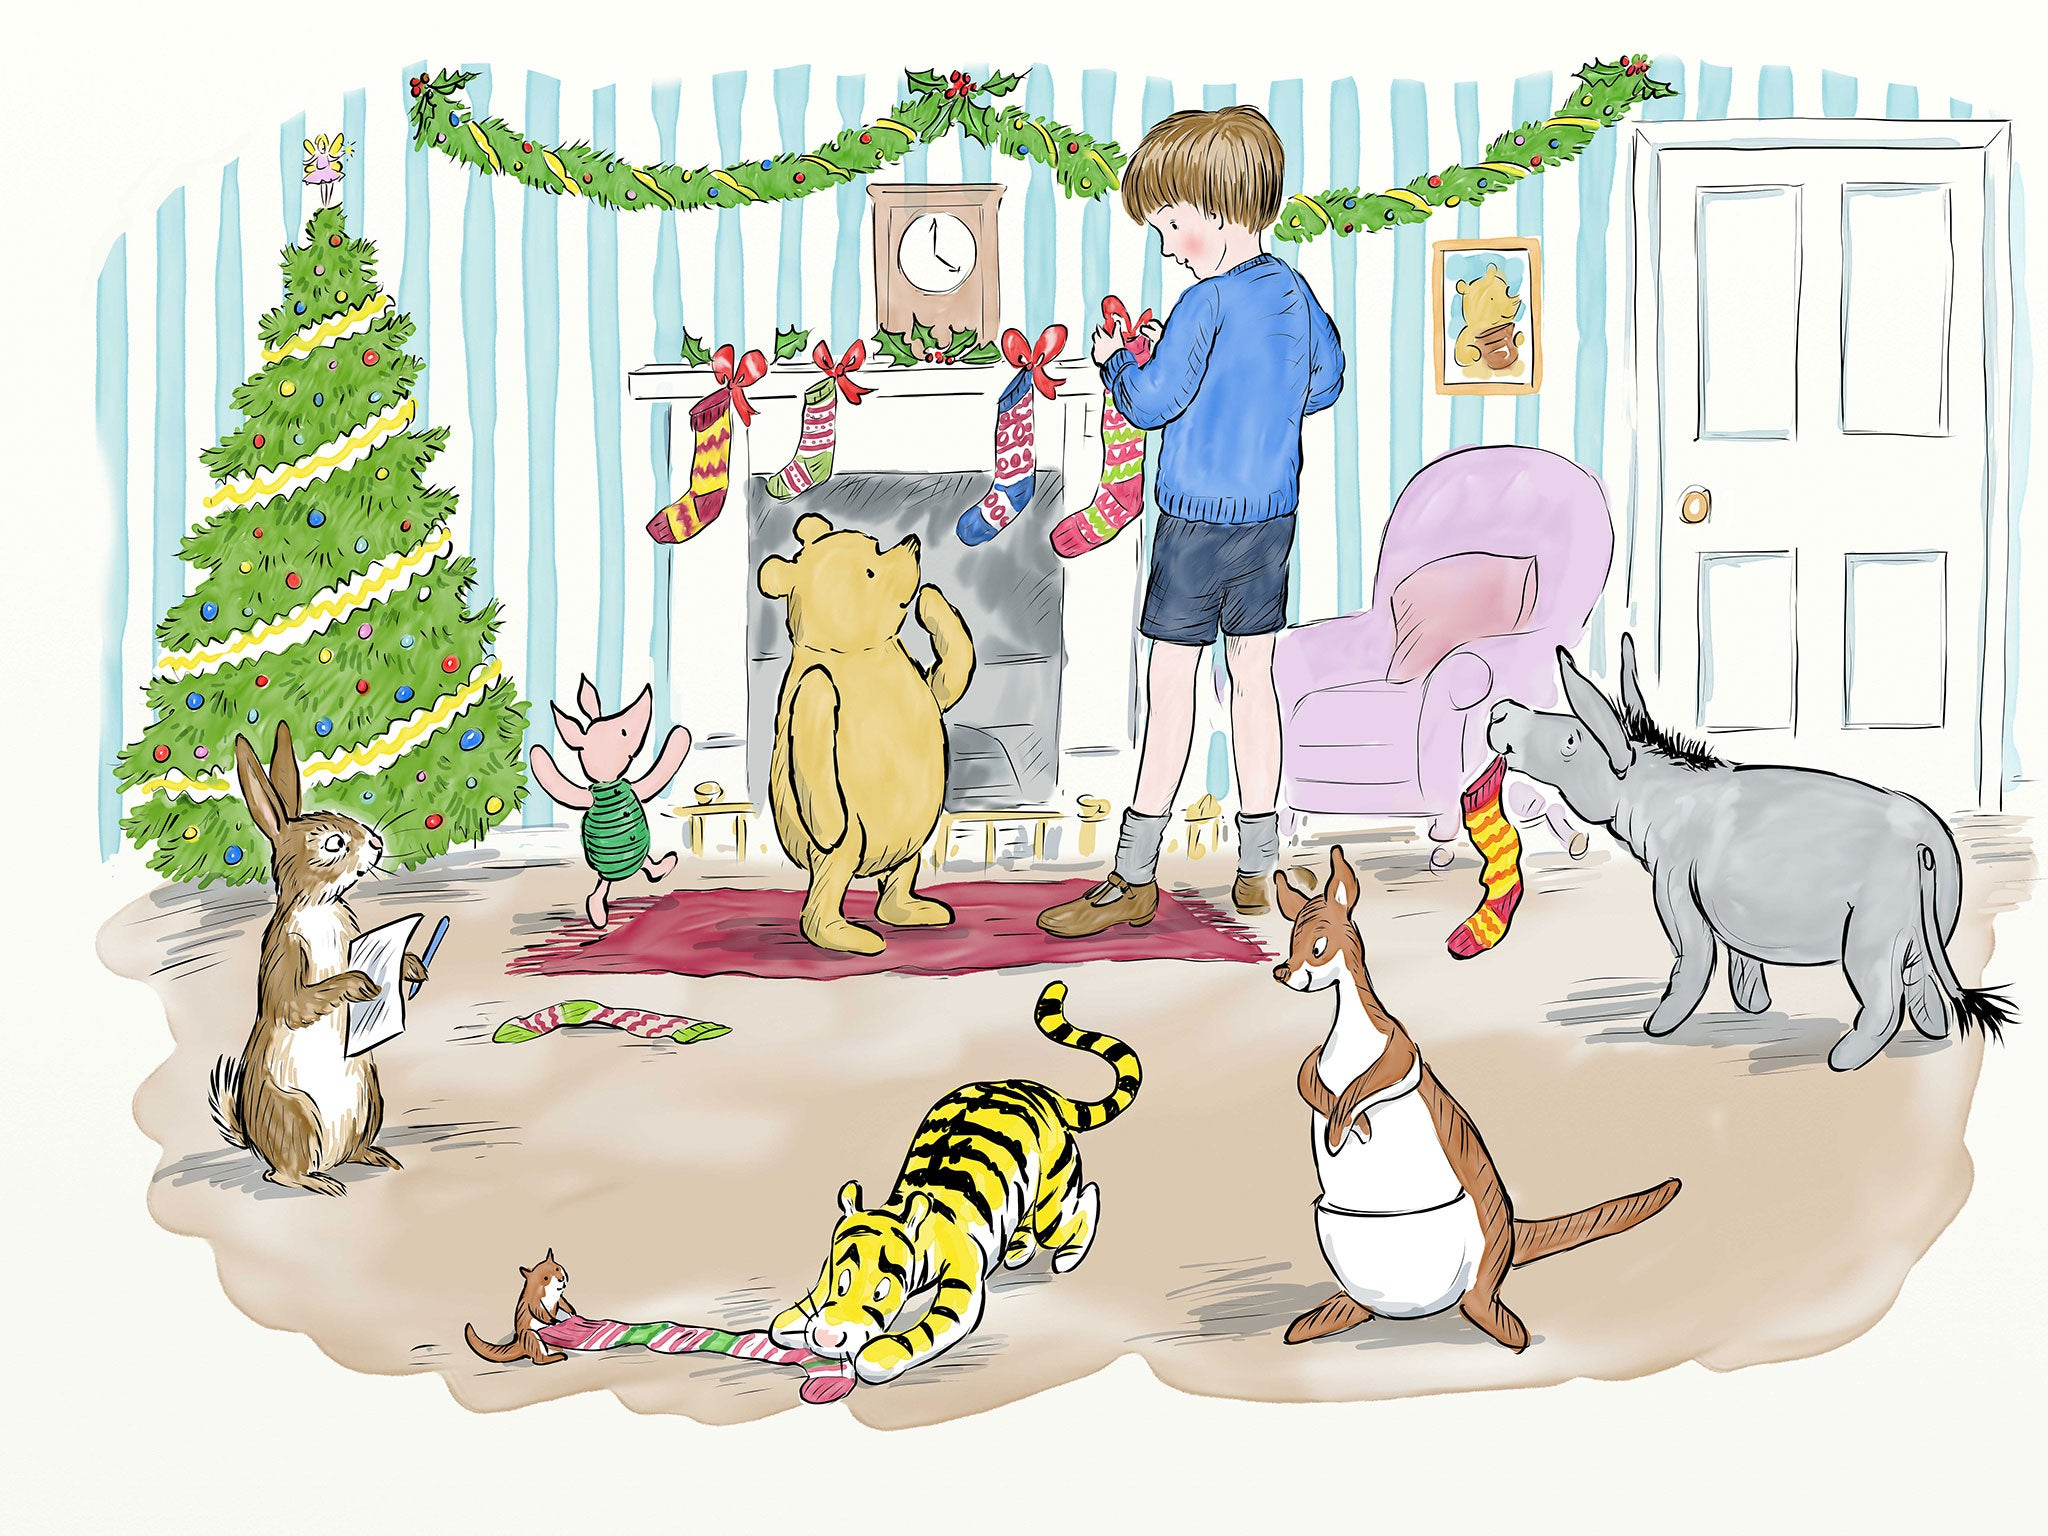 Christmas Illustration.New Winnie The Pooh Illustrations Celebrate Christmas